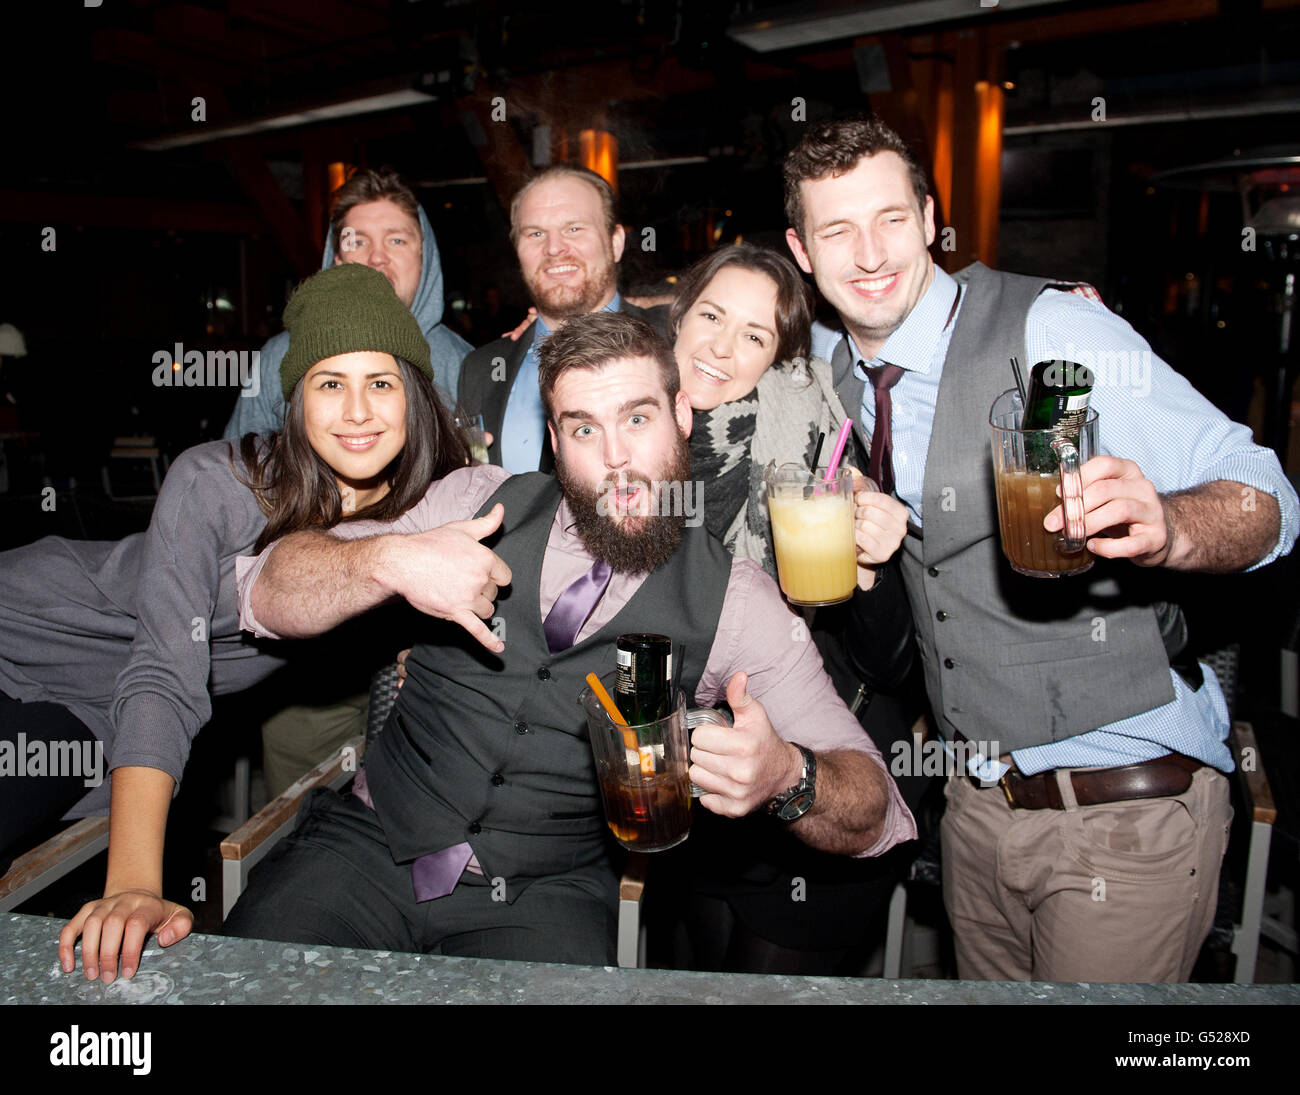 Party goers in the Whistler Village on New year's Eve.  Whistler BC, Canada - Stock Image